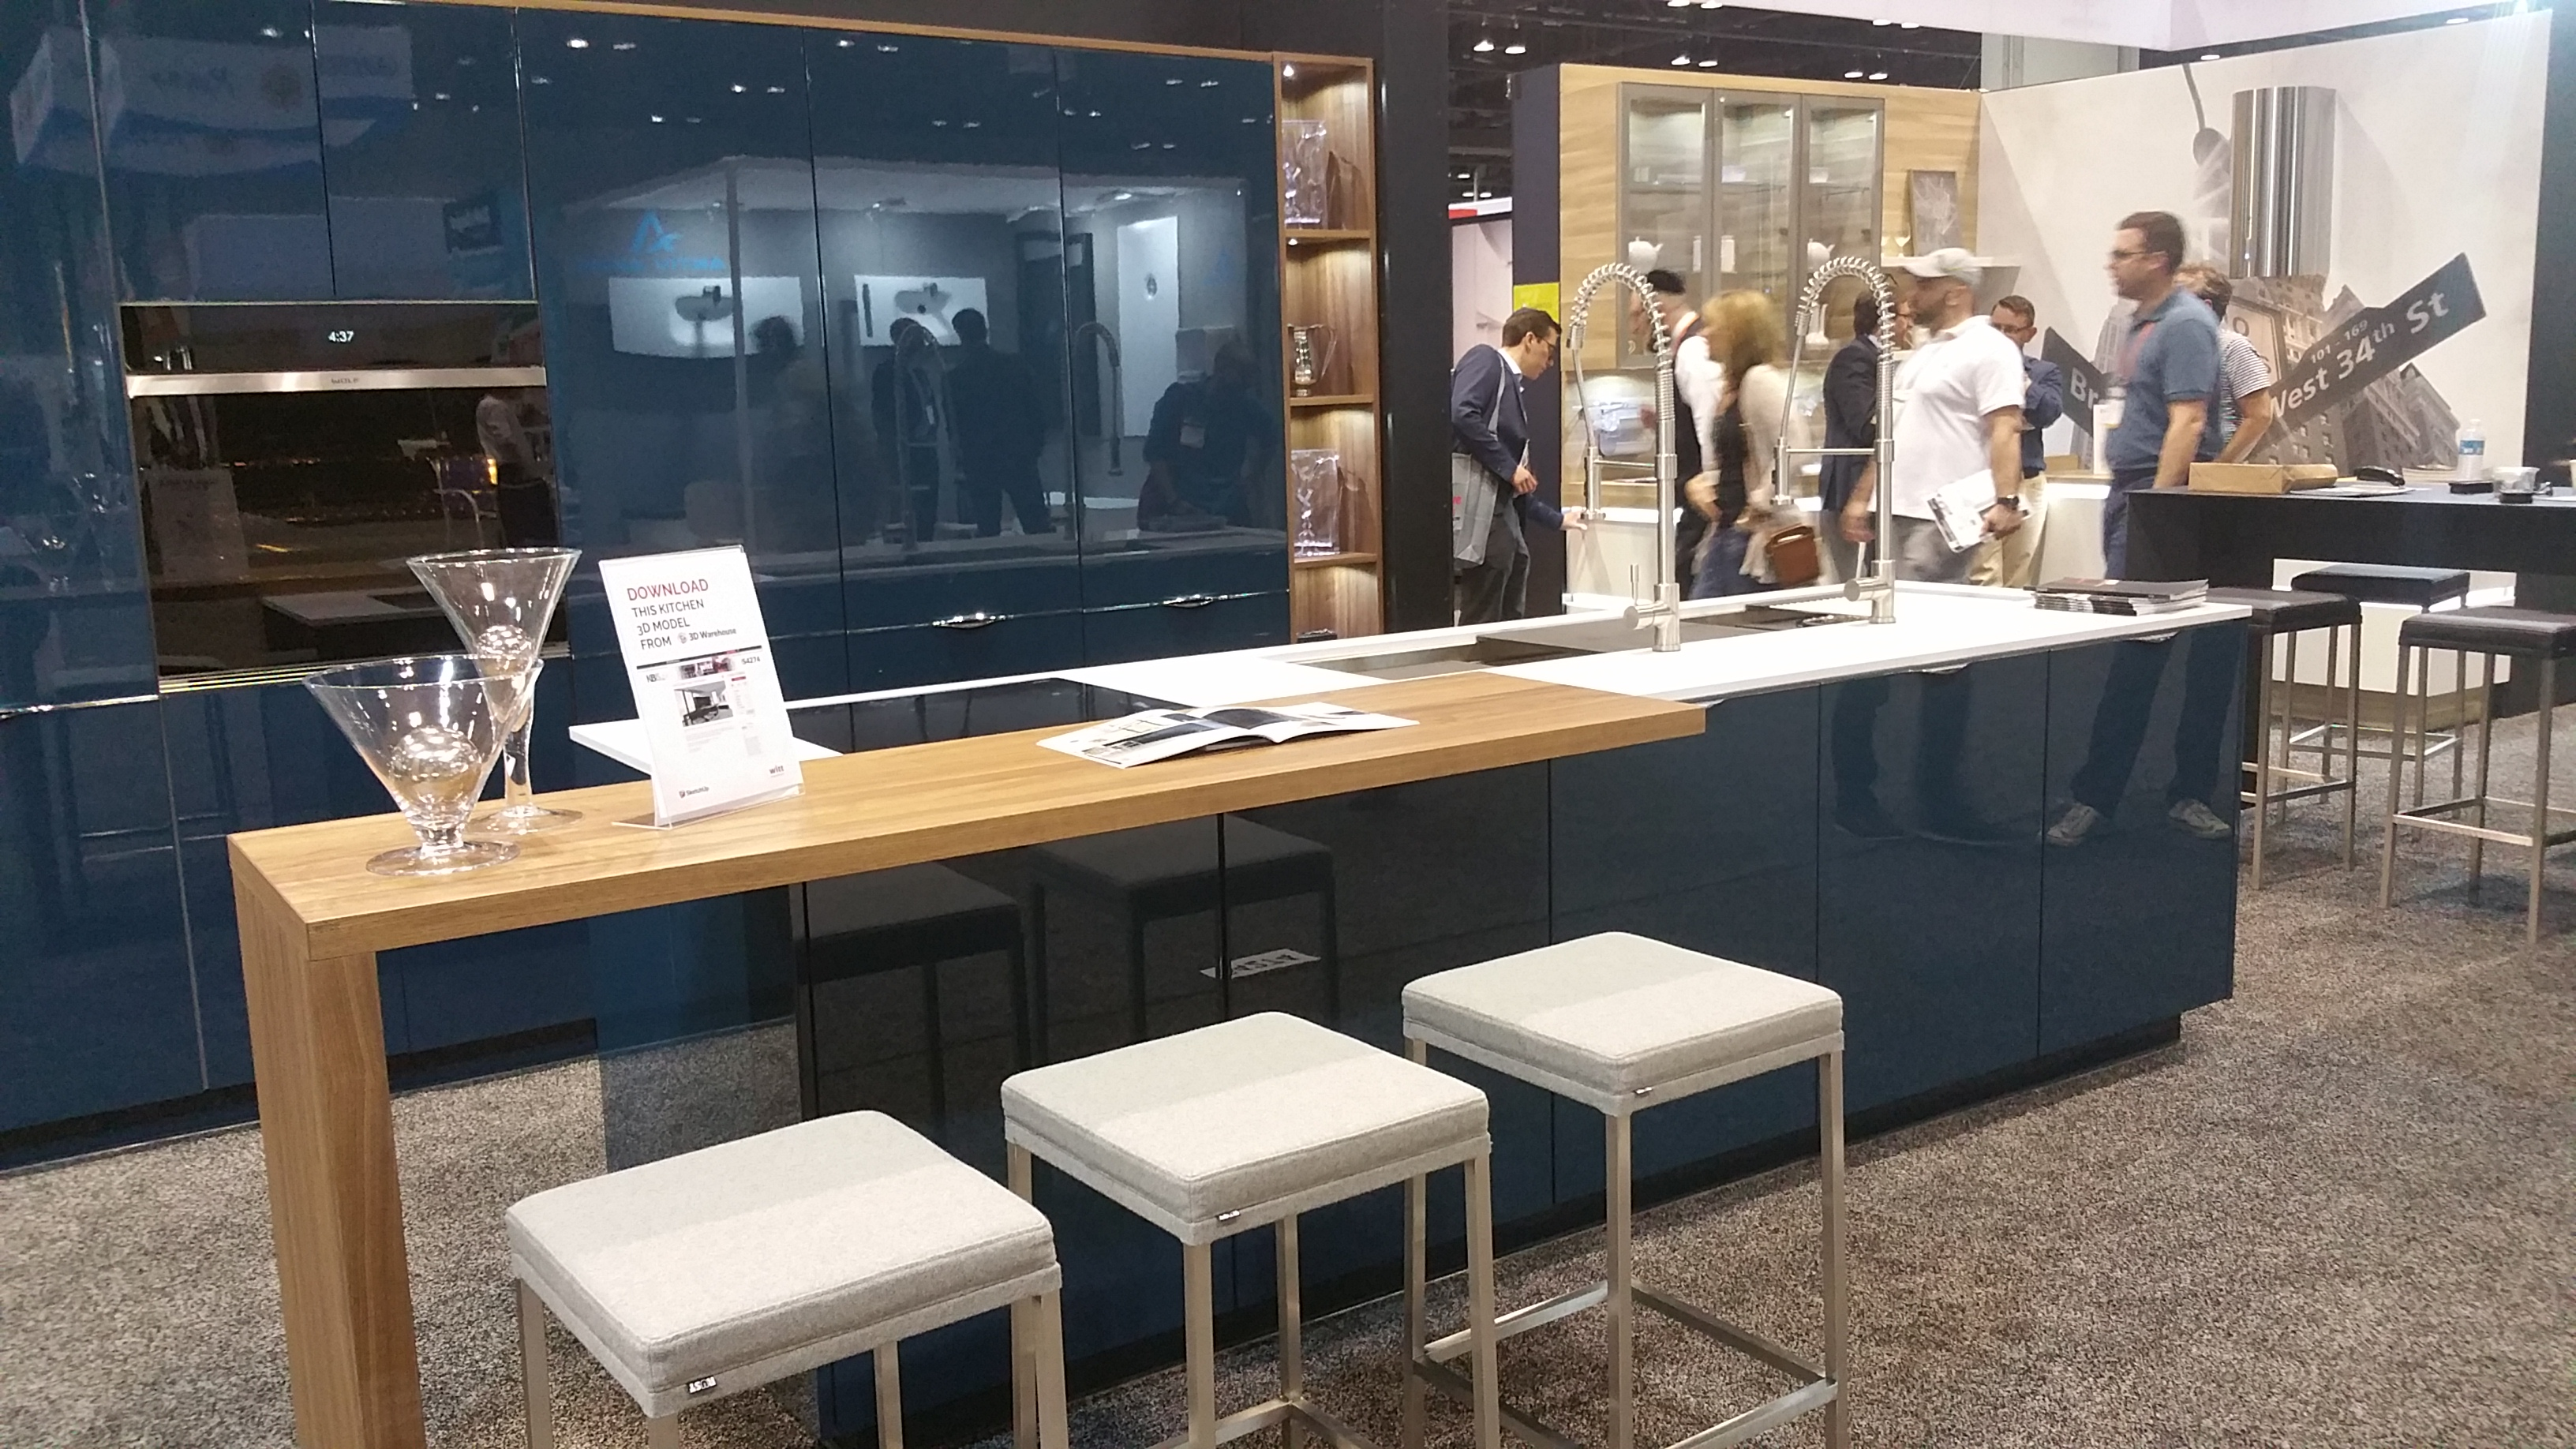 rust-at-this-years-kbis-american-fair-the-kitchen-bath-industry-show-in-florida